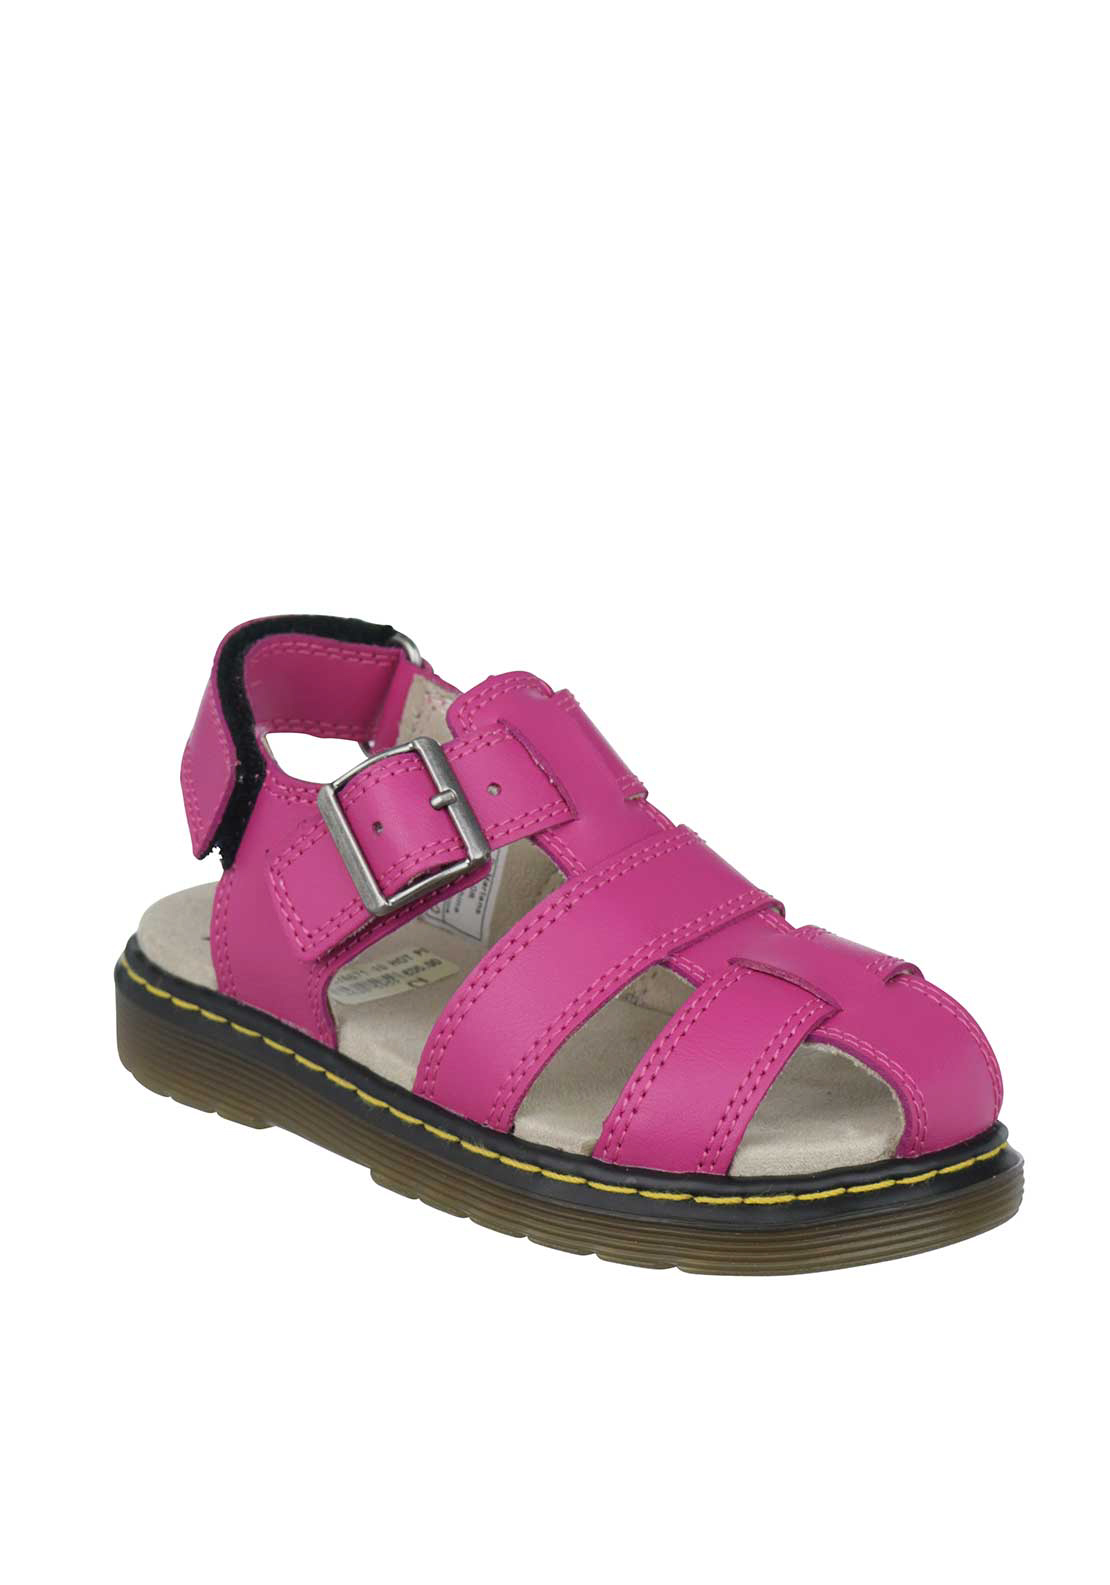 Dr. Martens Girls Sailor Leather Sandals, Pink